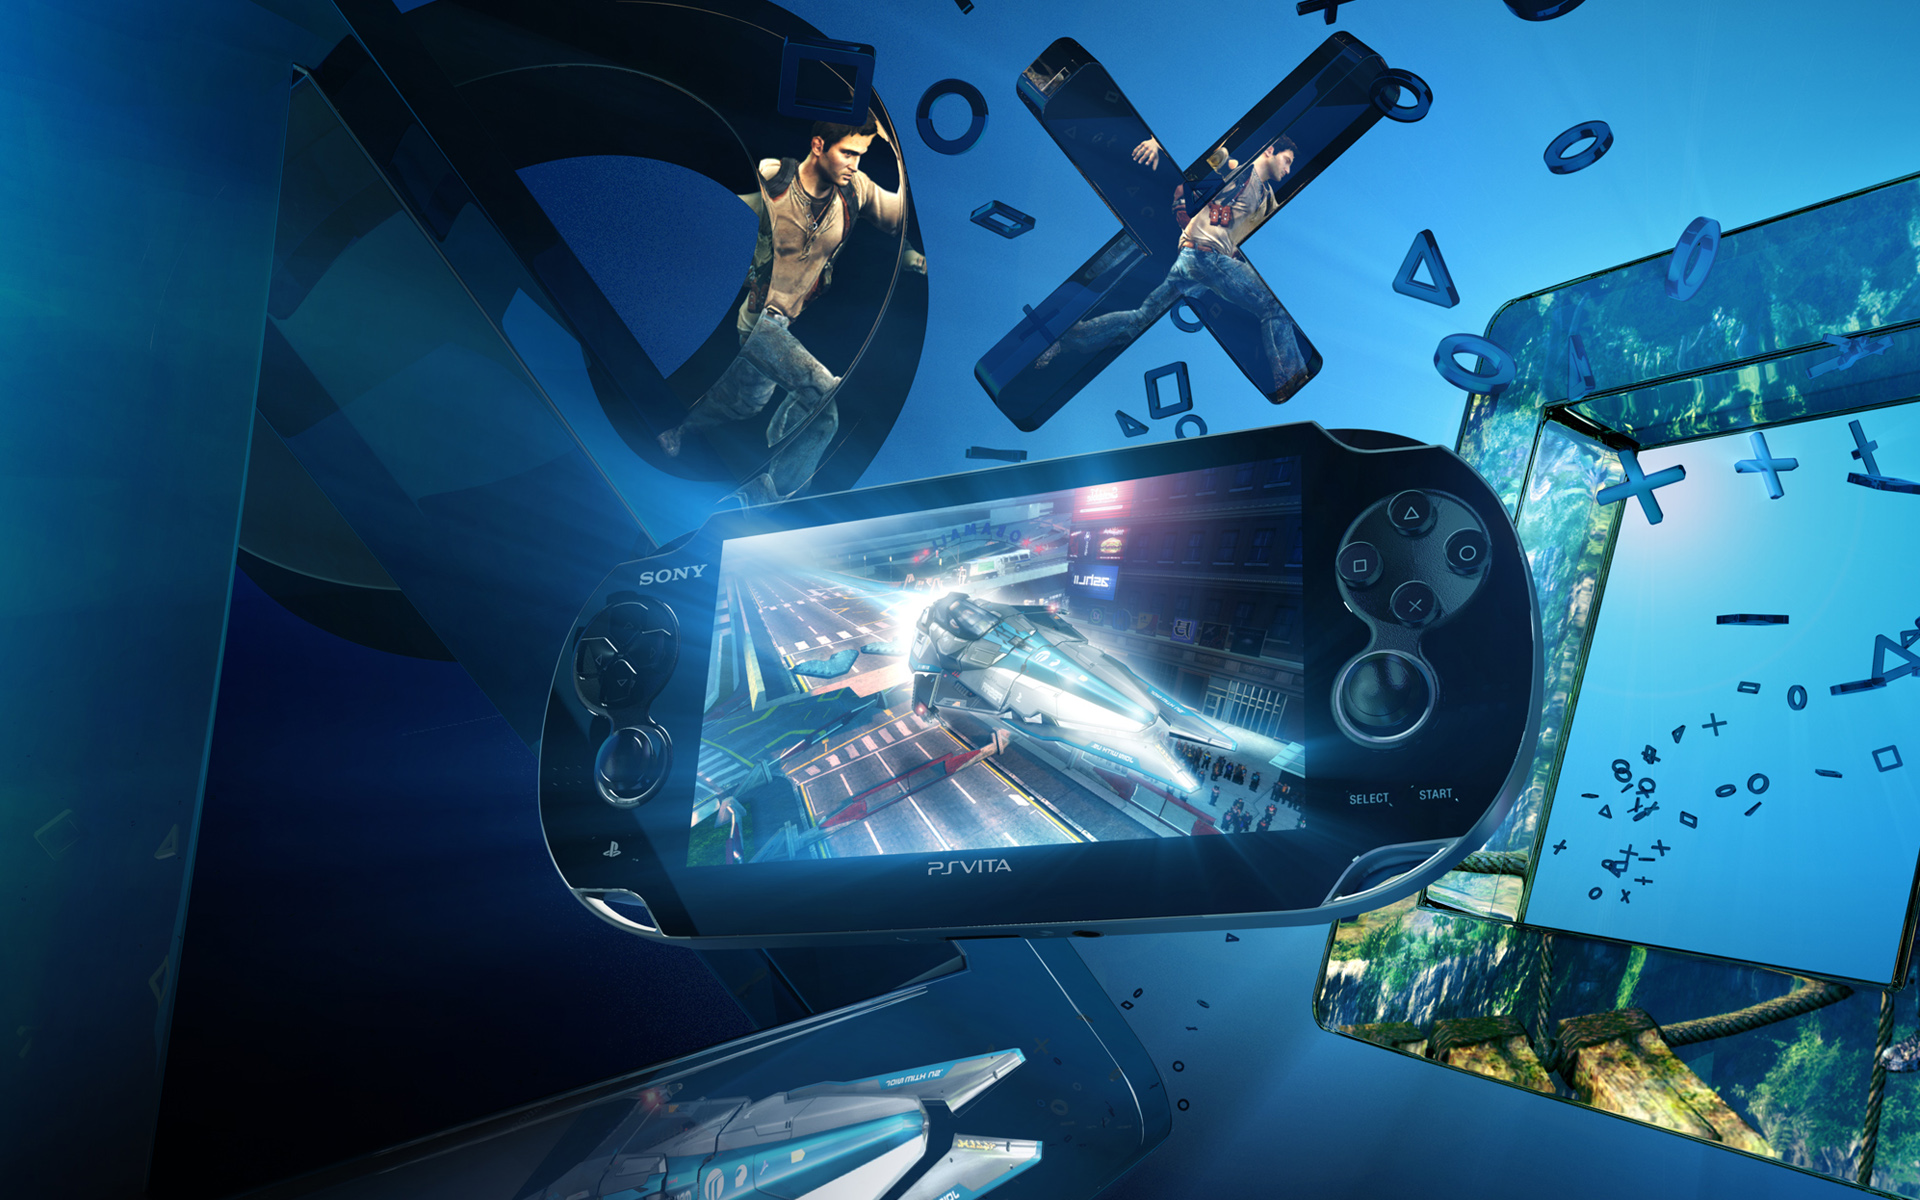 playstation vita full hd wallpaper and background image | 1920x1200